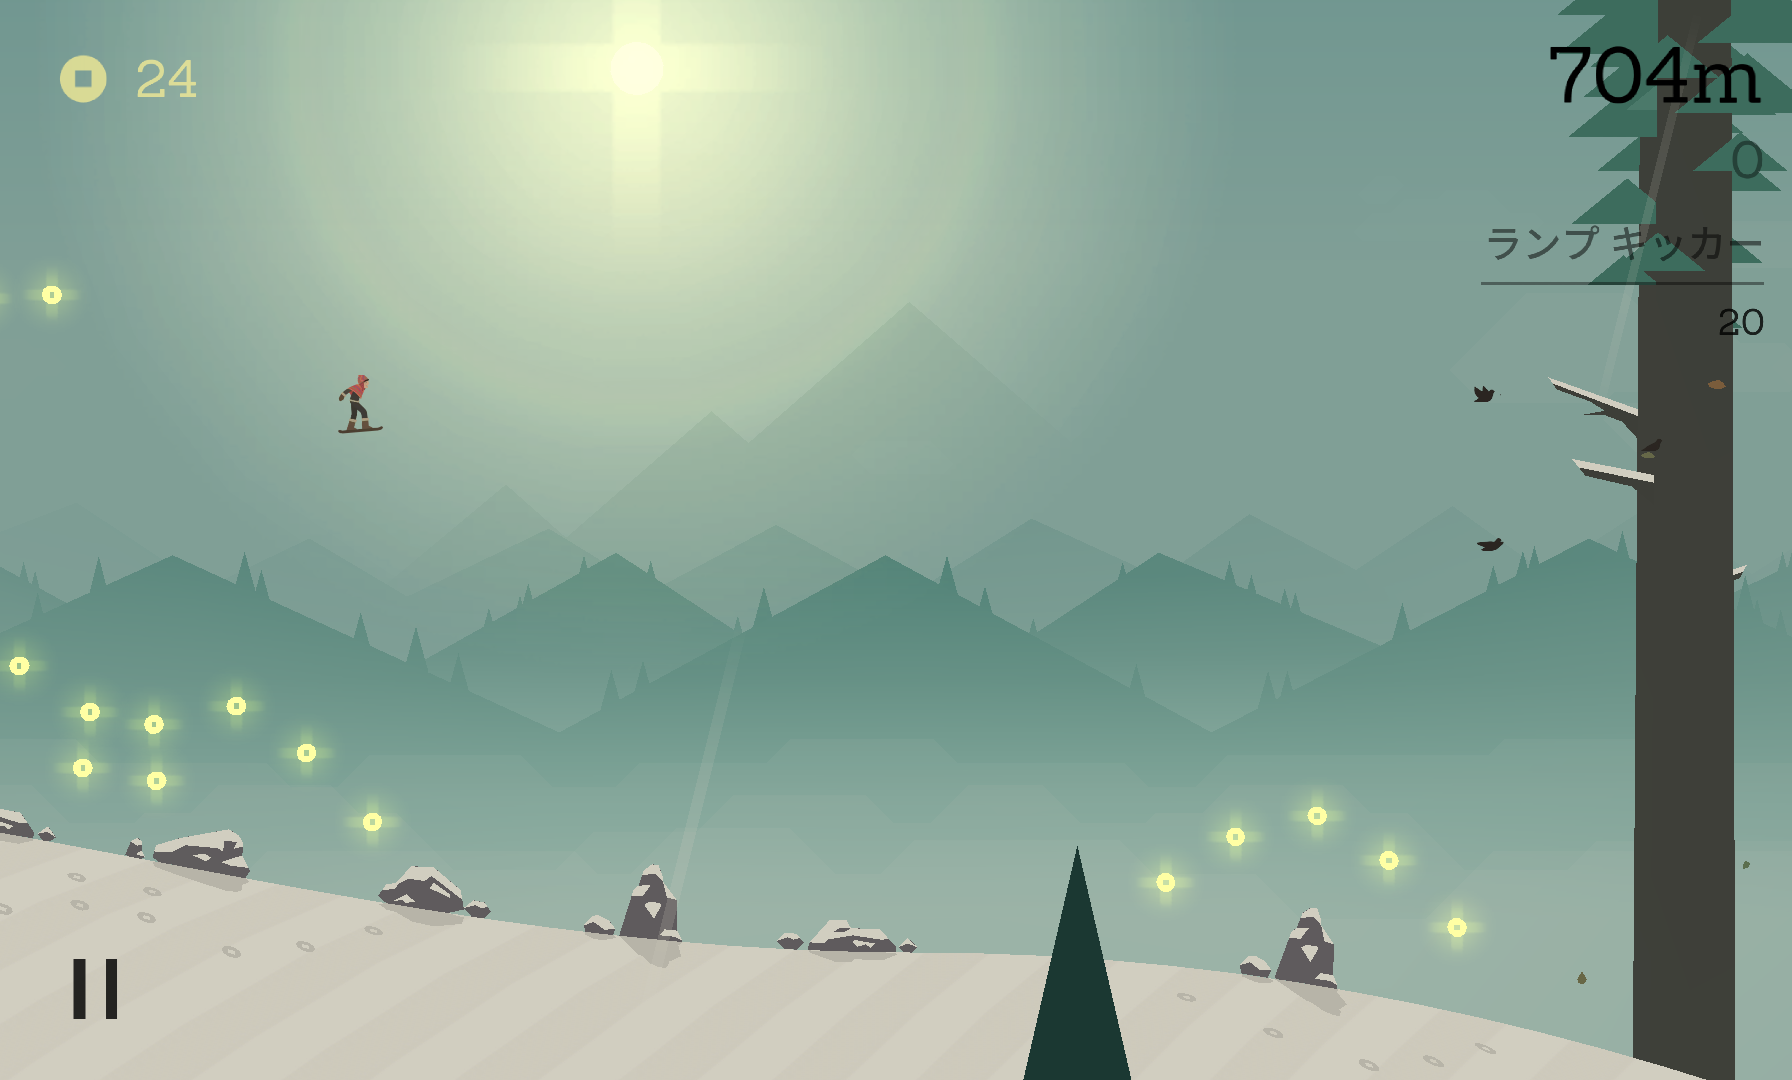 Alto's Adventure androidアプリスクリーンショット1